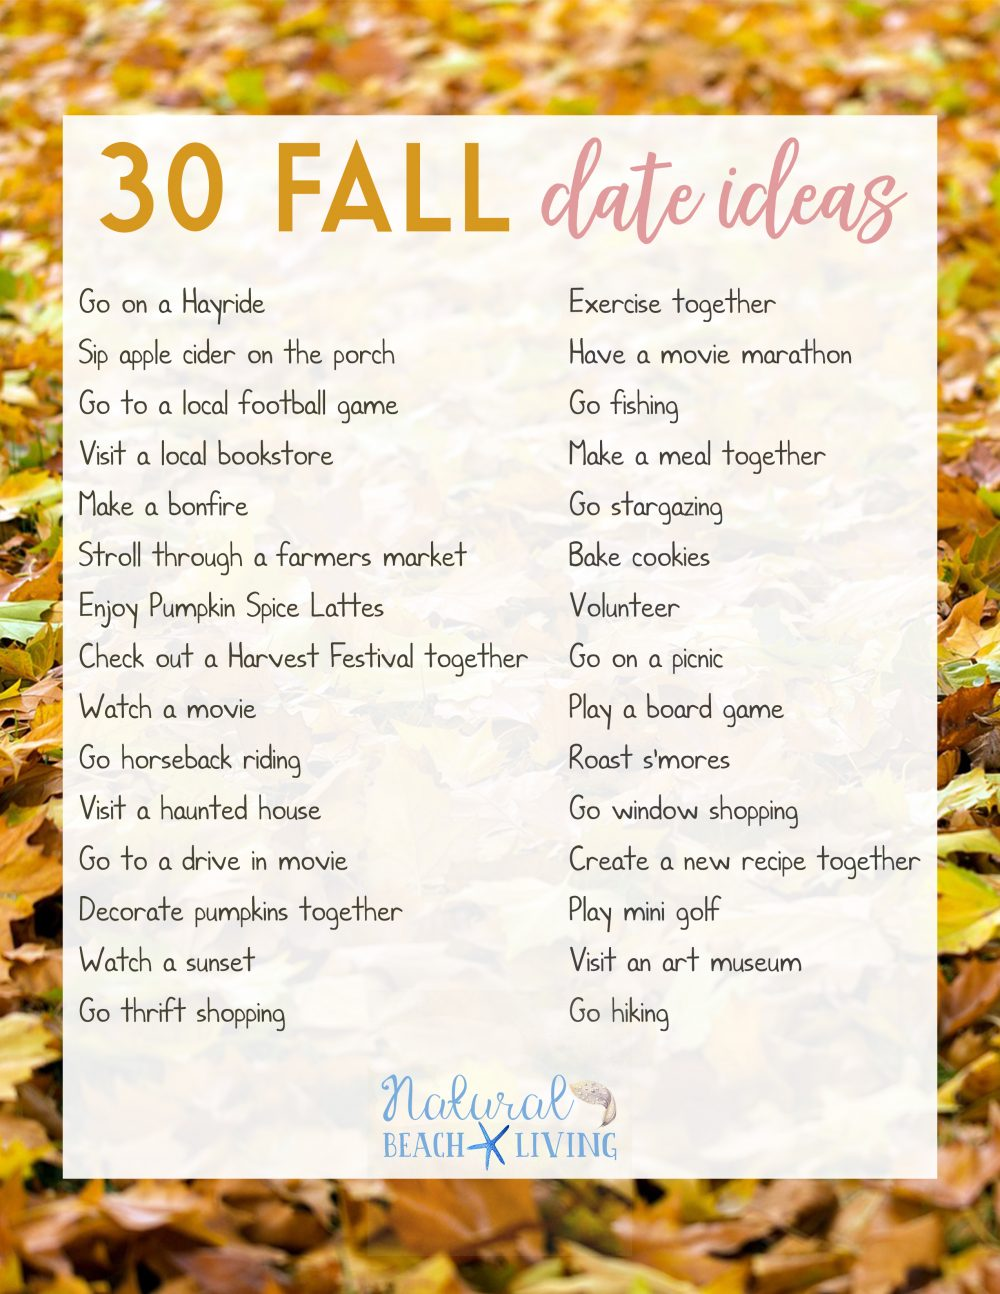 Fun Date Night Ideas for Fall - Natural Beach Living